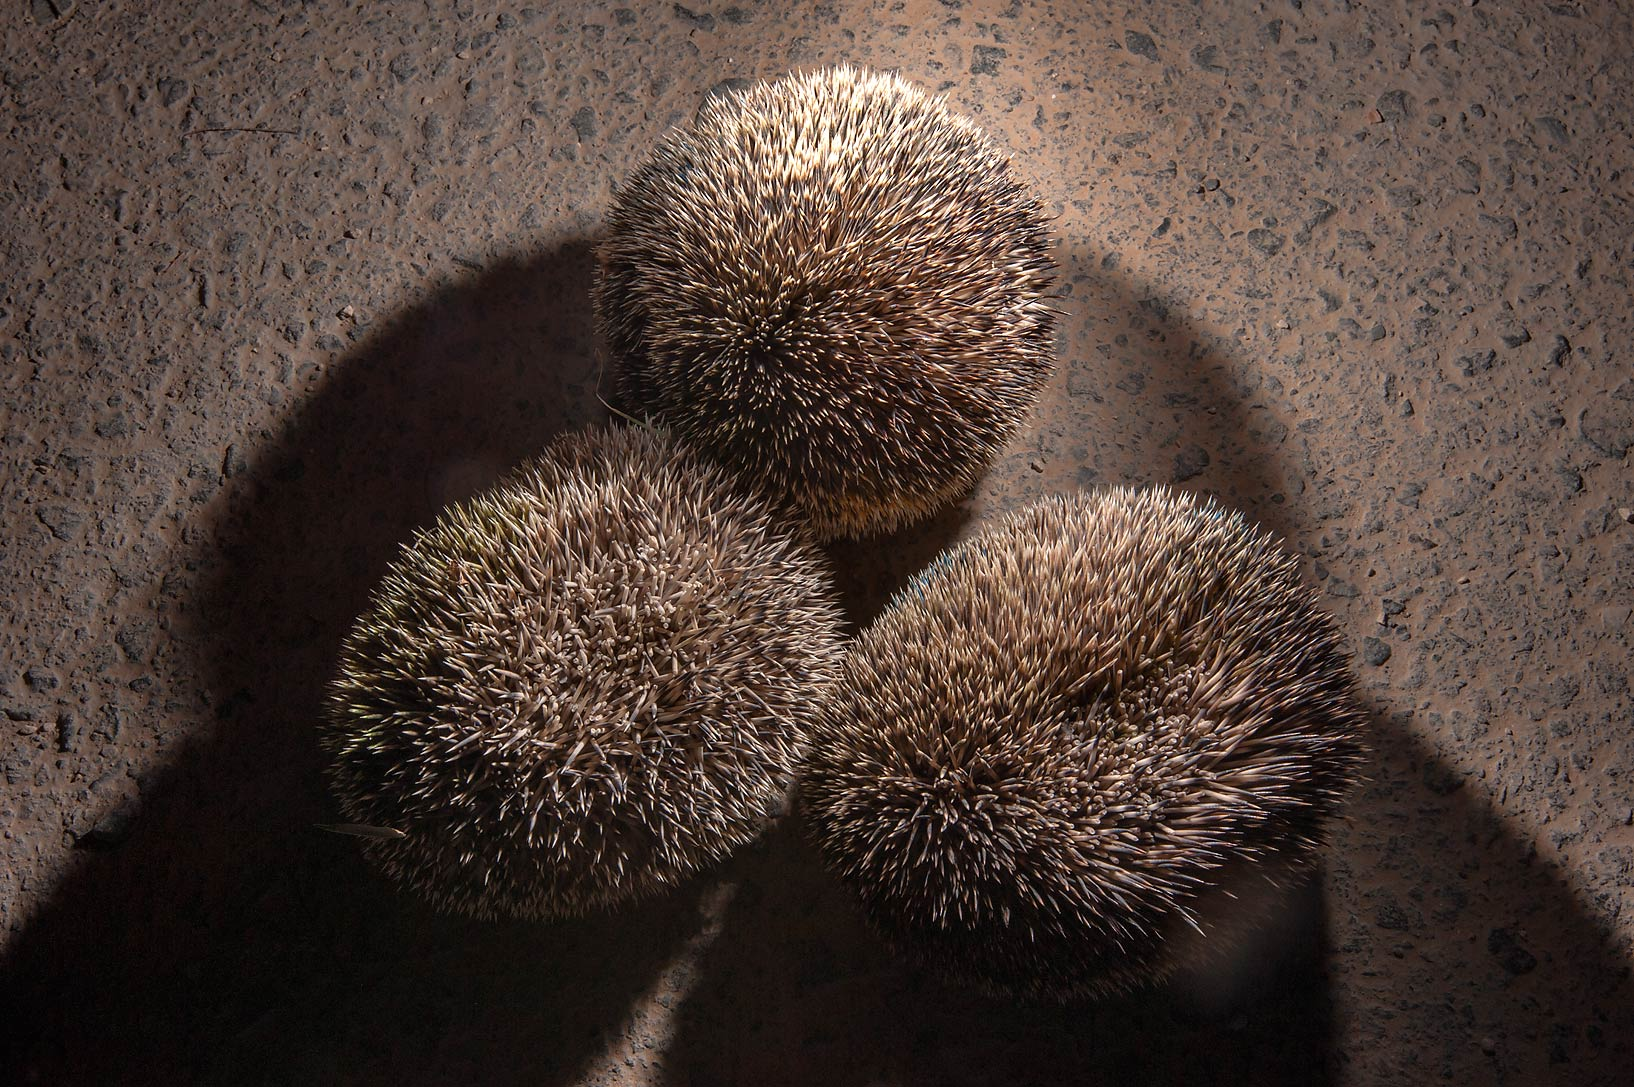 Ethiopian hedgehogs rolled into prickly balls in...Natural History Group (QNHG). Qatar